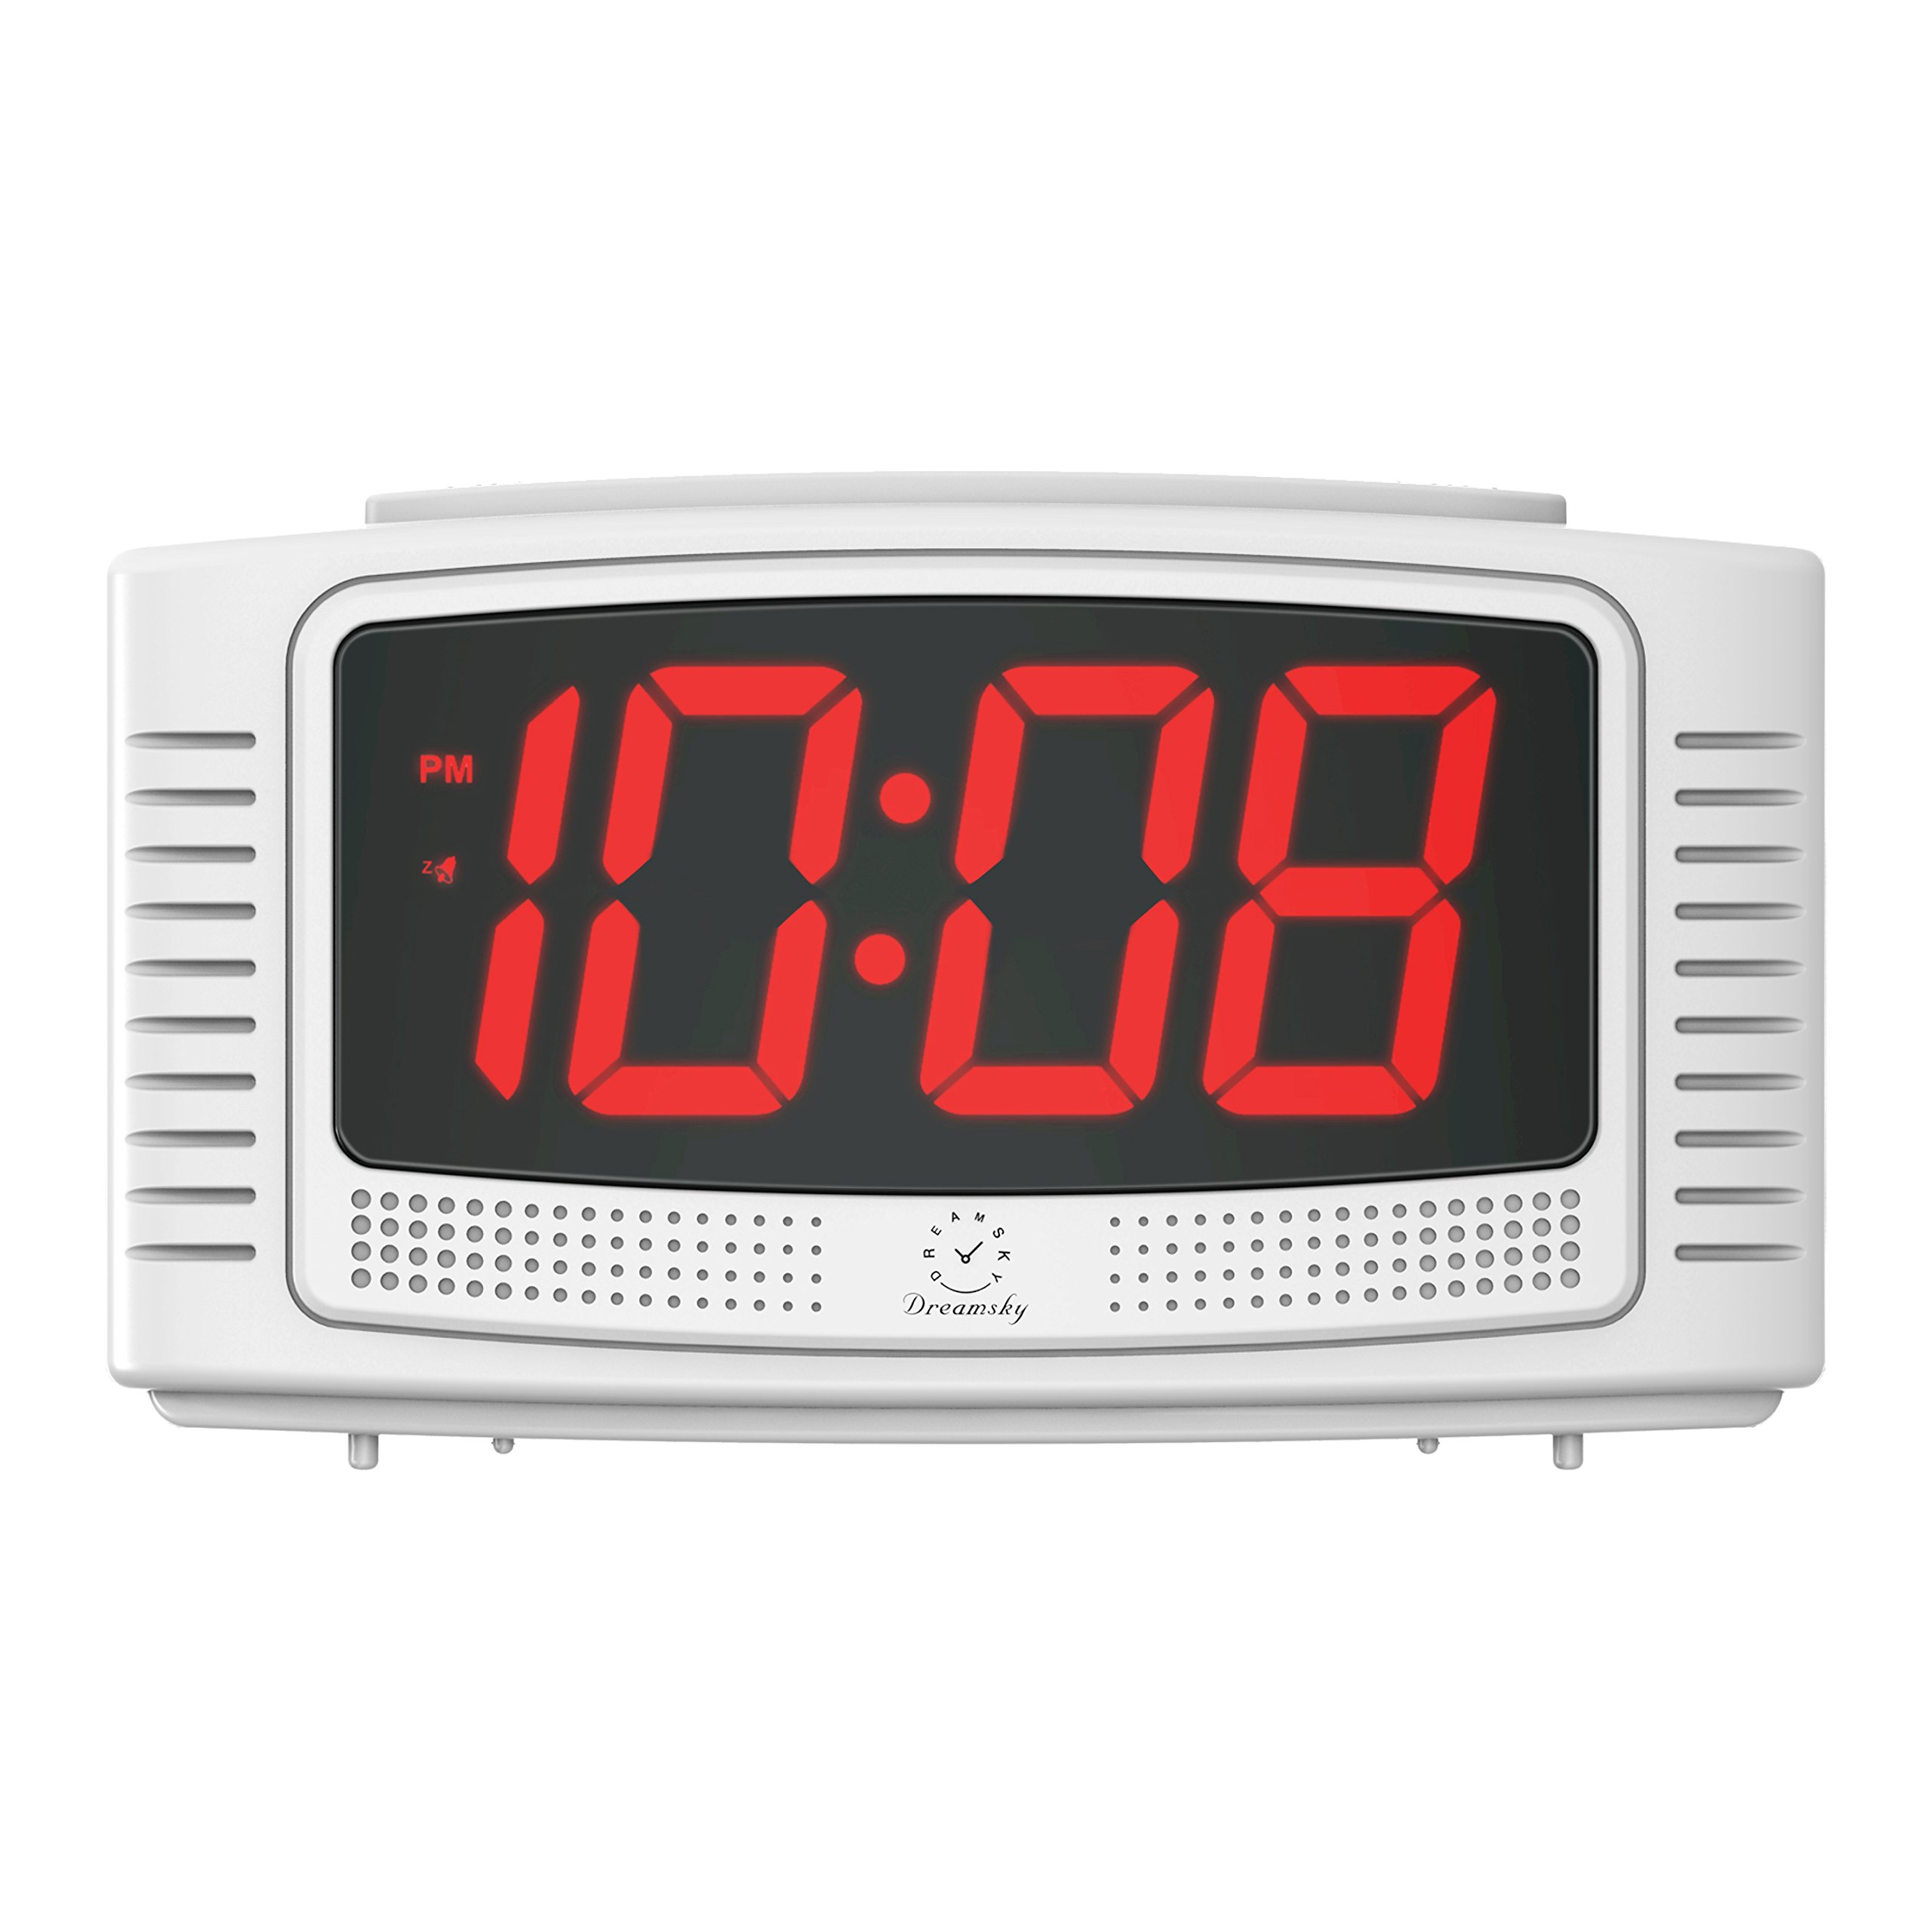 DreamSky Digital Alarm Clock, 1.2'' Clear LED Digit Display with Dimmer (High/Low/Off ), Loud Alarms, Snooze, Simple Operation, Compact Plug in Alarm Clock for Bedroom